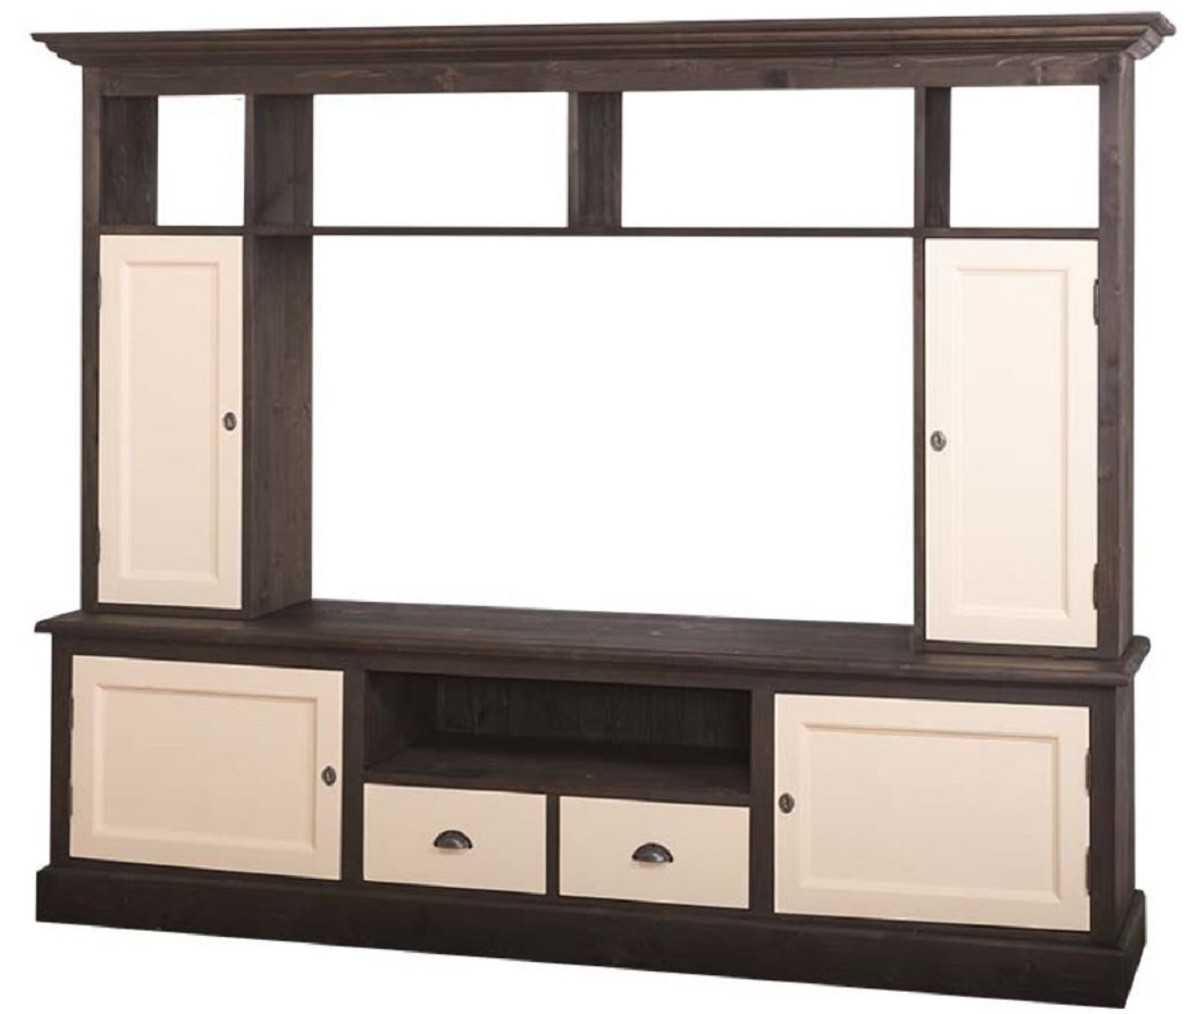 Casa Padrino armadio TV per soggiorno in stile country marrone scuro /  beige 207 x 46 x H. 166 cm - Armadio TV in Legno Massello - Armadio per ...